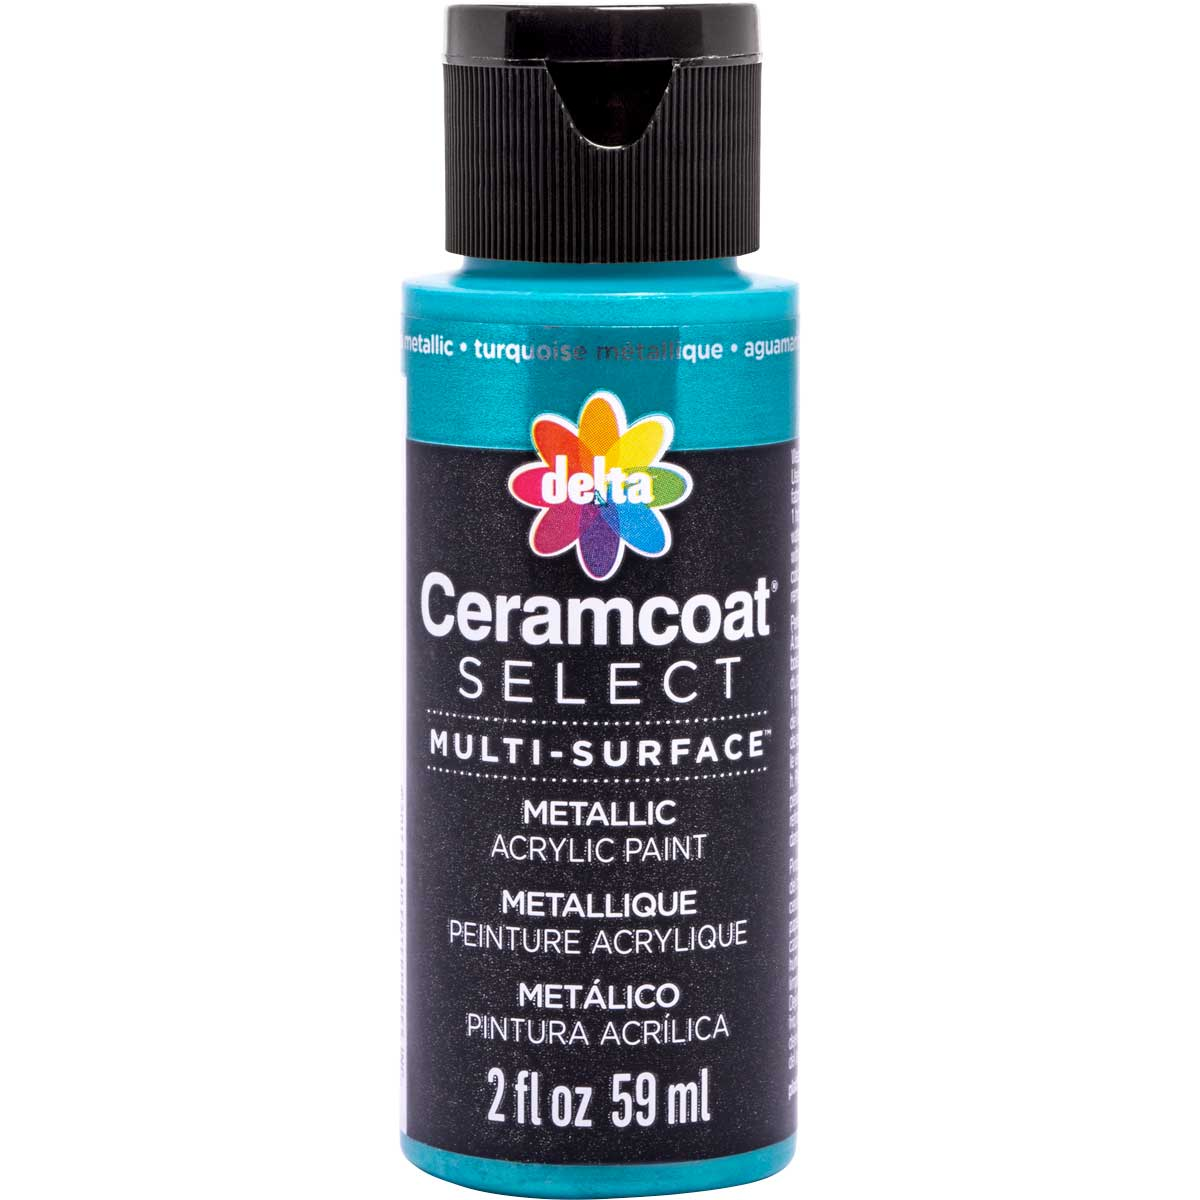 Delta Ceramcoat ® Select Multi-Surface Acrylic Paint - Metallic - Aqua, 2 oz. - 04103